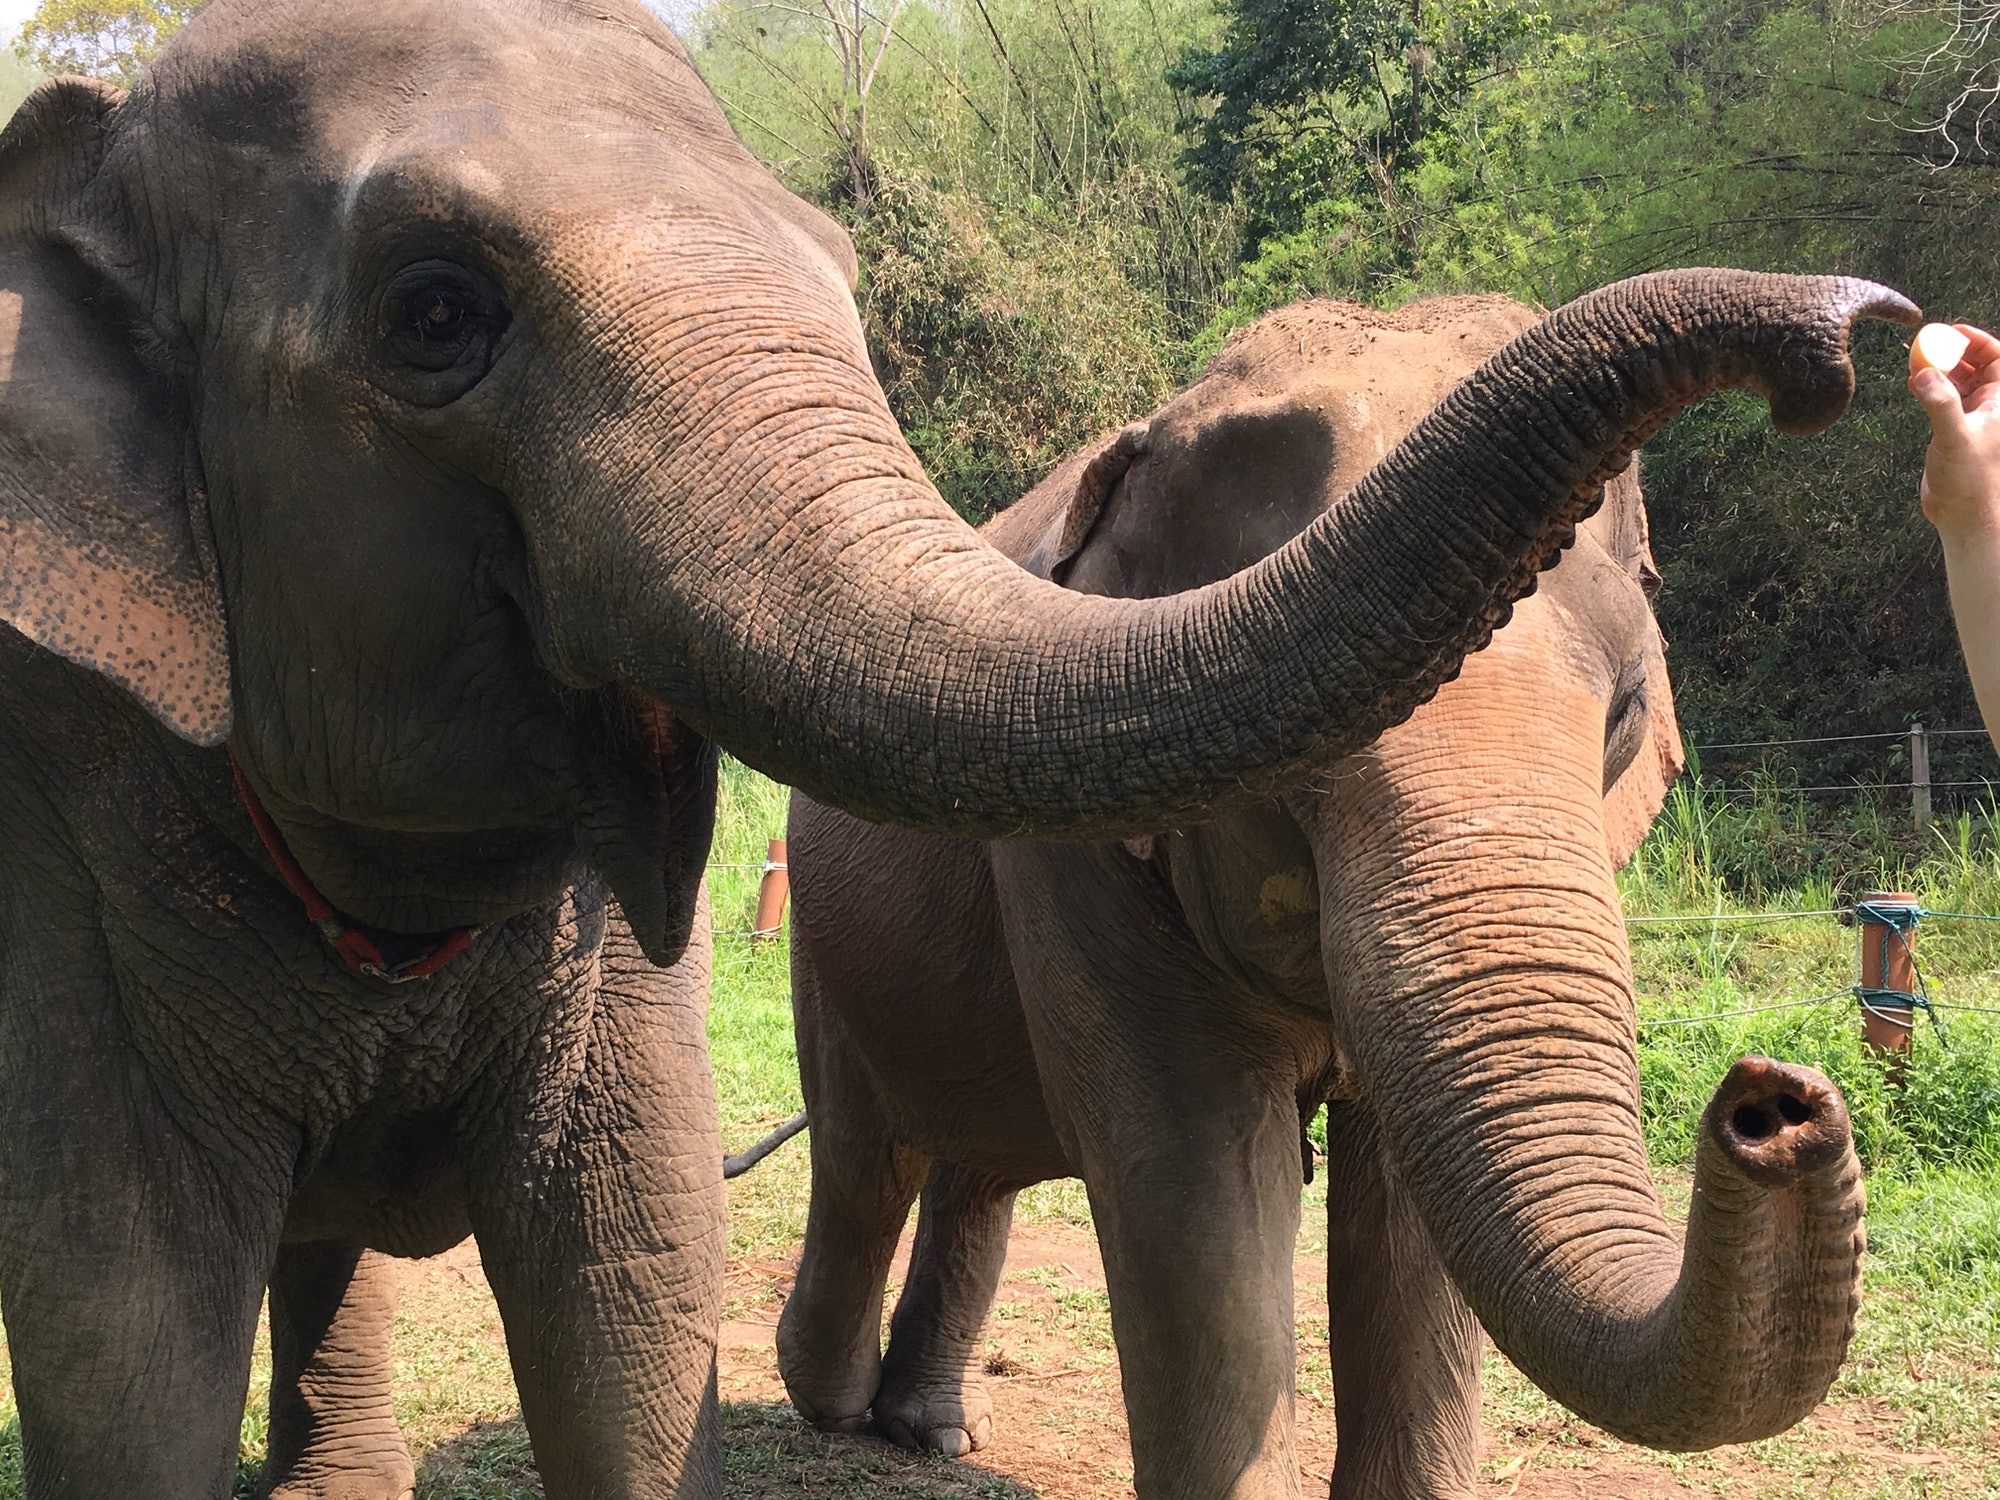 Elephants at the Golden Triangle Asian Elephant Foundation in Chiang Rai, Thailand